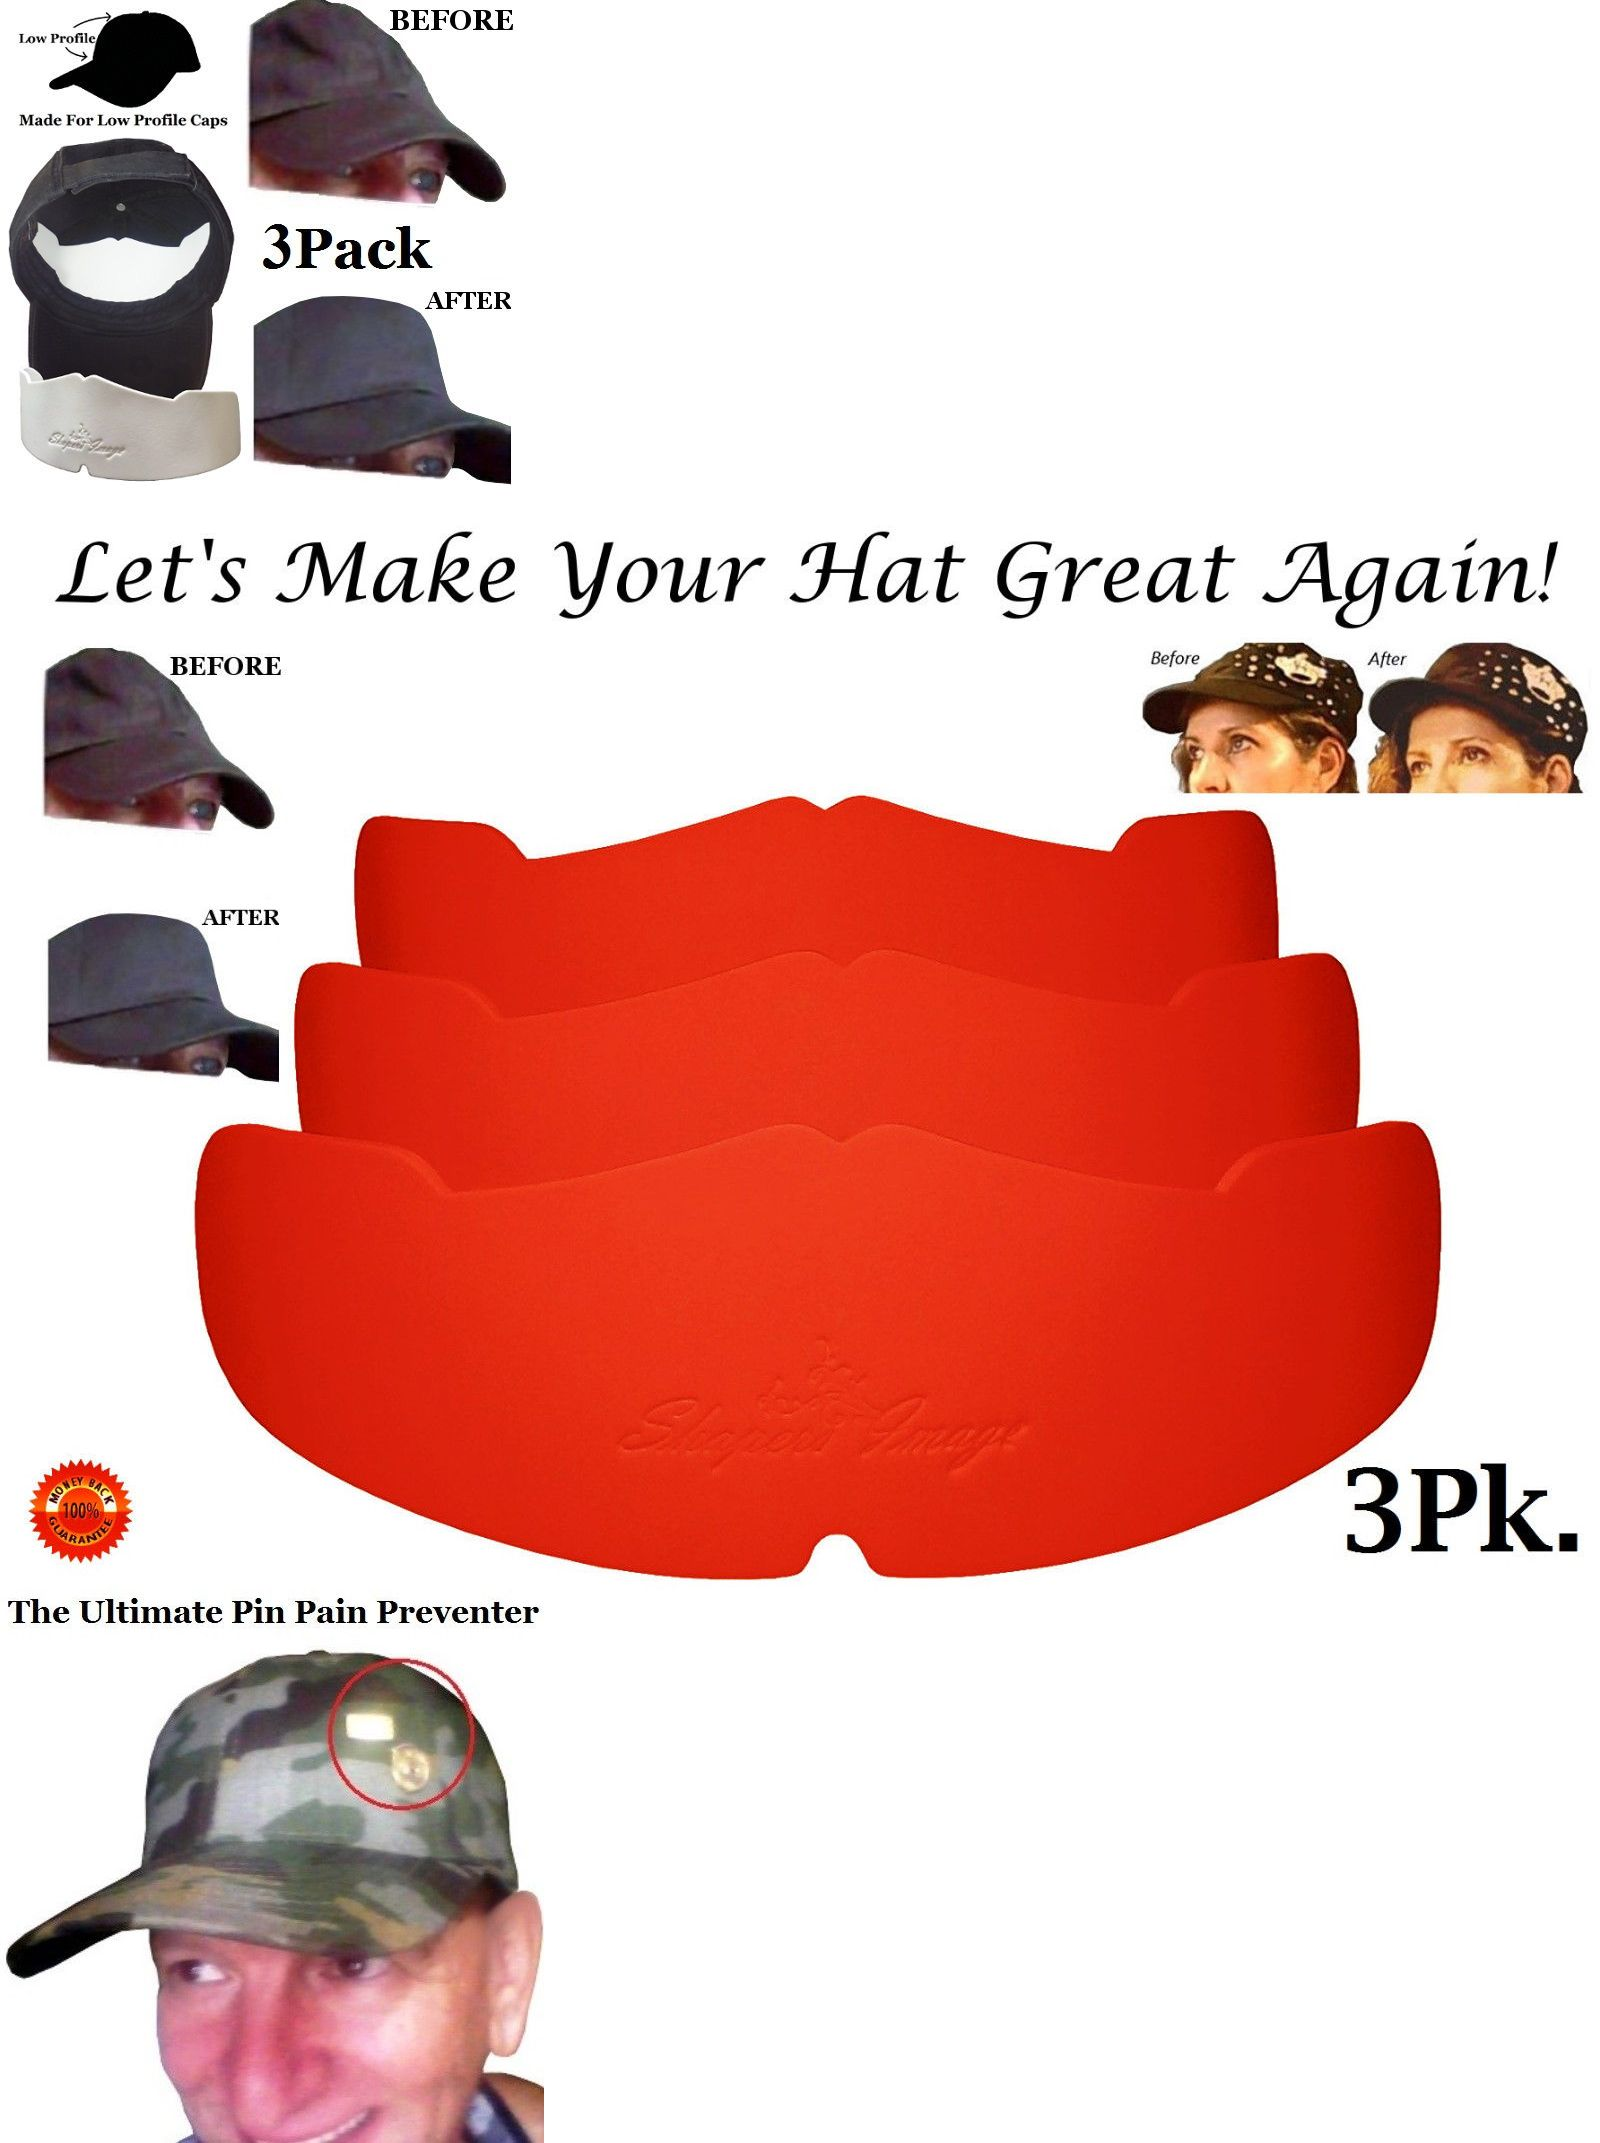 088c04e7fb5 Clothing Shoes and Accessories 158963  Manta Ray Baseball Caps Crown Inserts  For Low Profile Cap